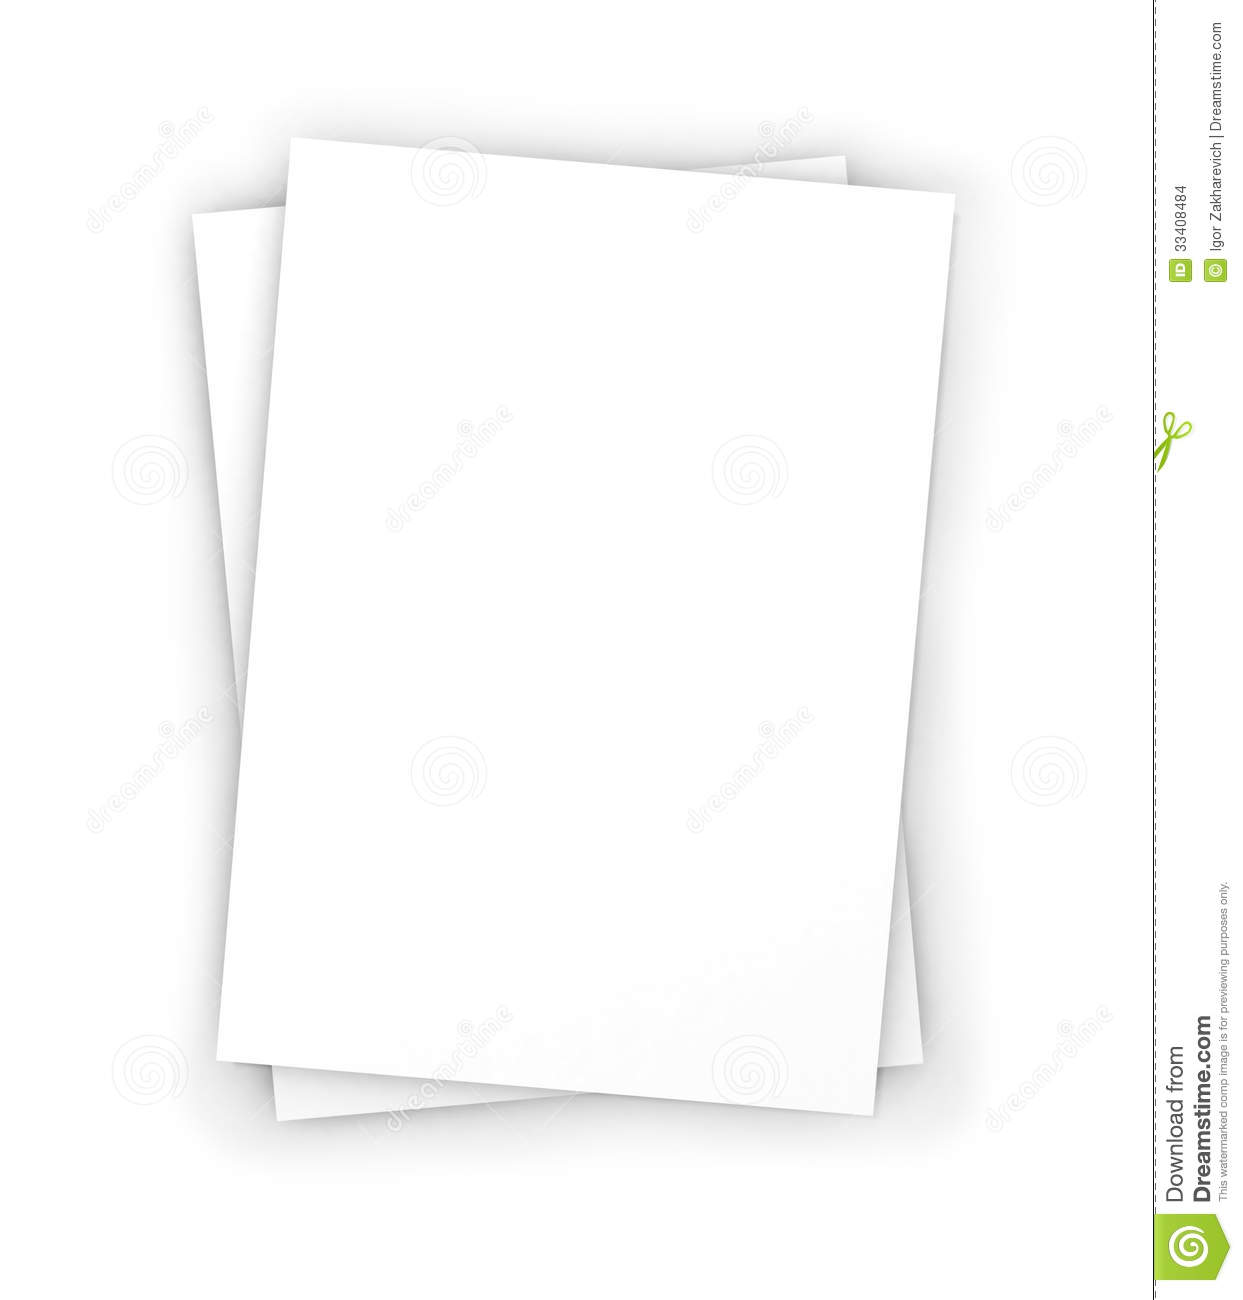 Blank Business Cards In Stack Stock Illustration - Illustration of ...